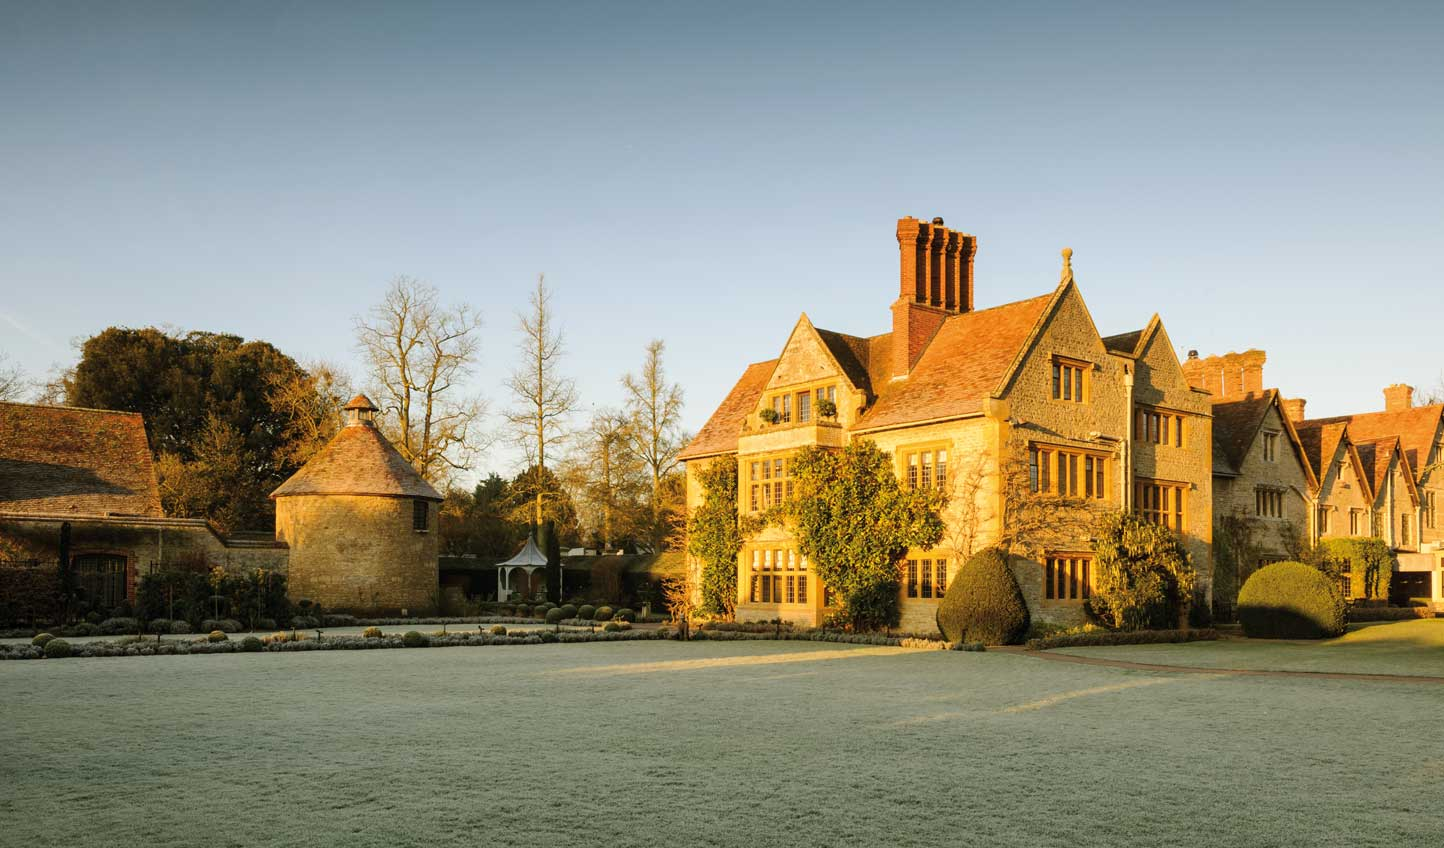 Crisp winter days at Le Manoir